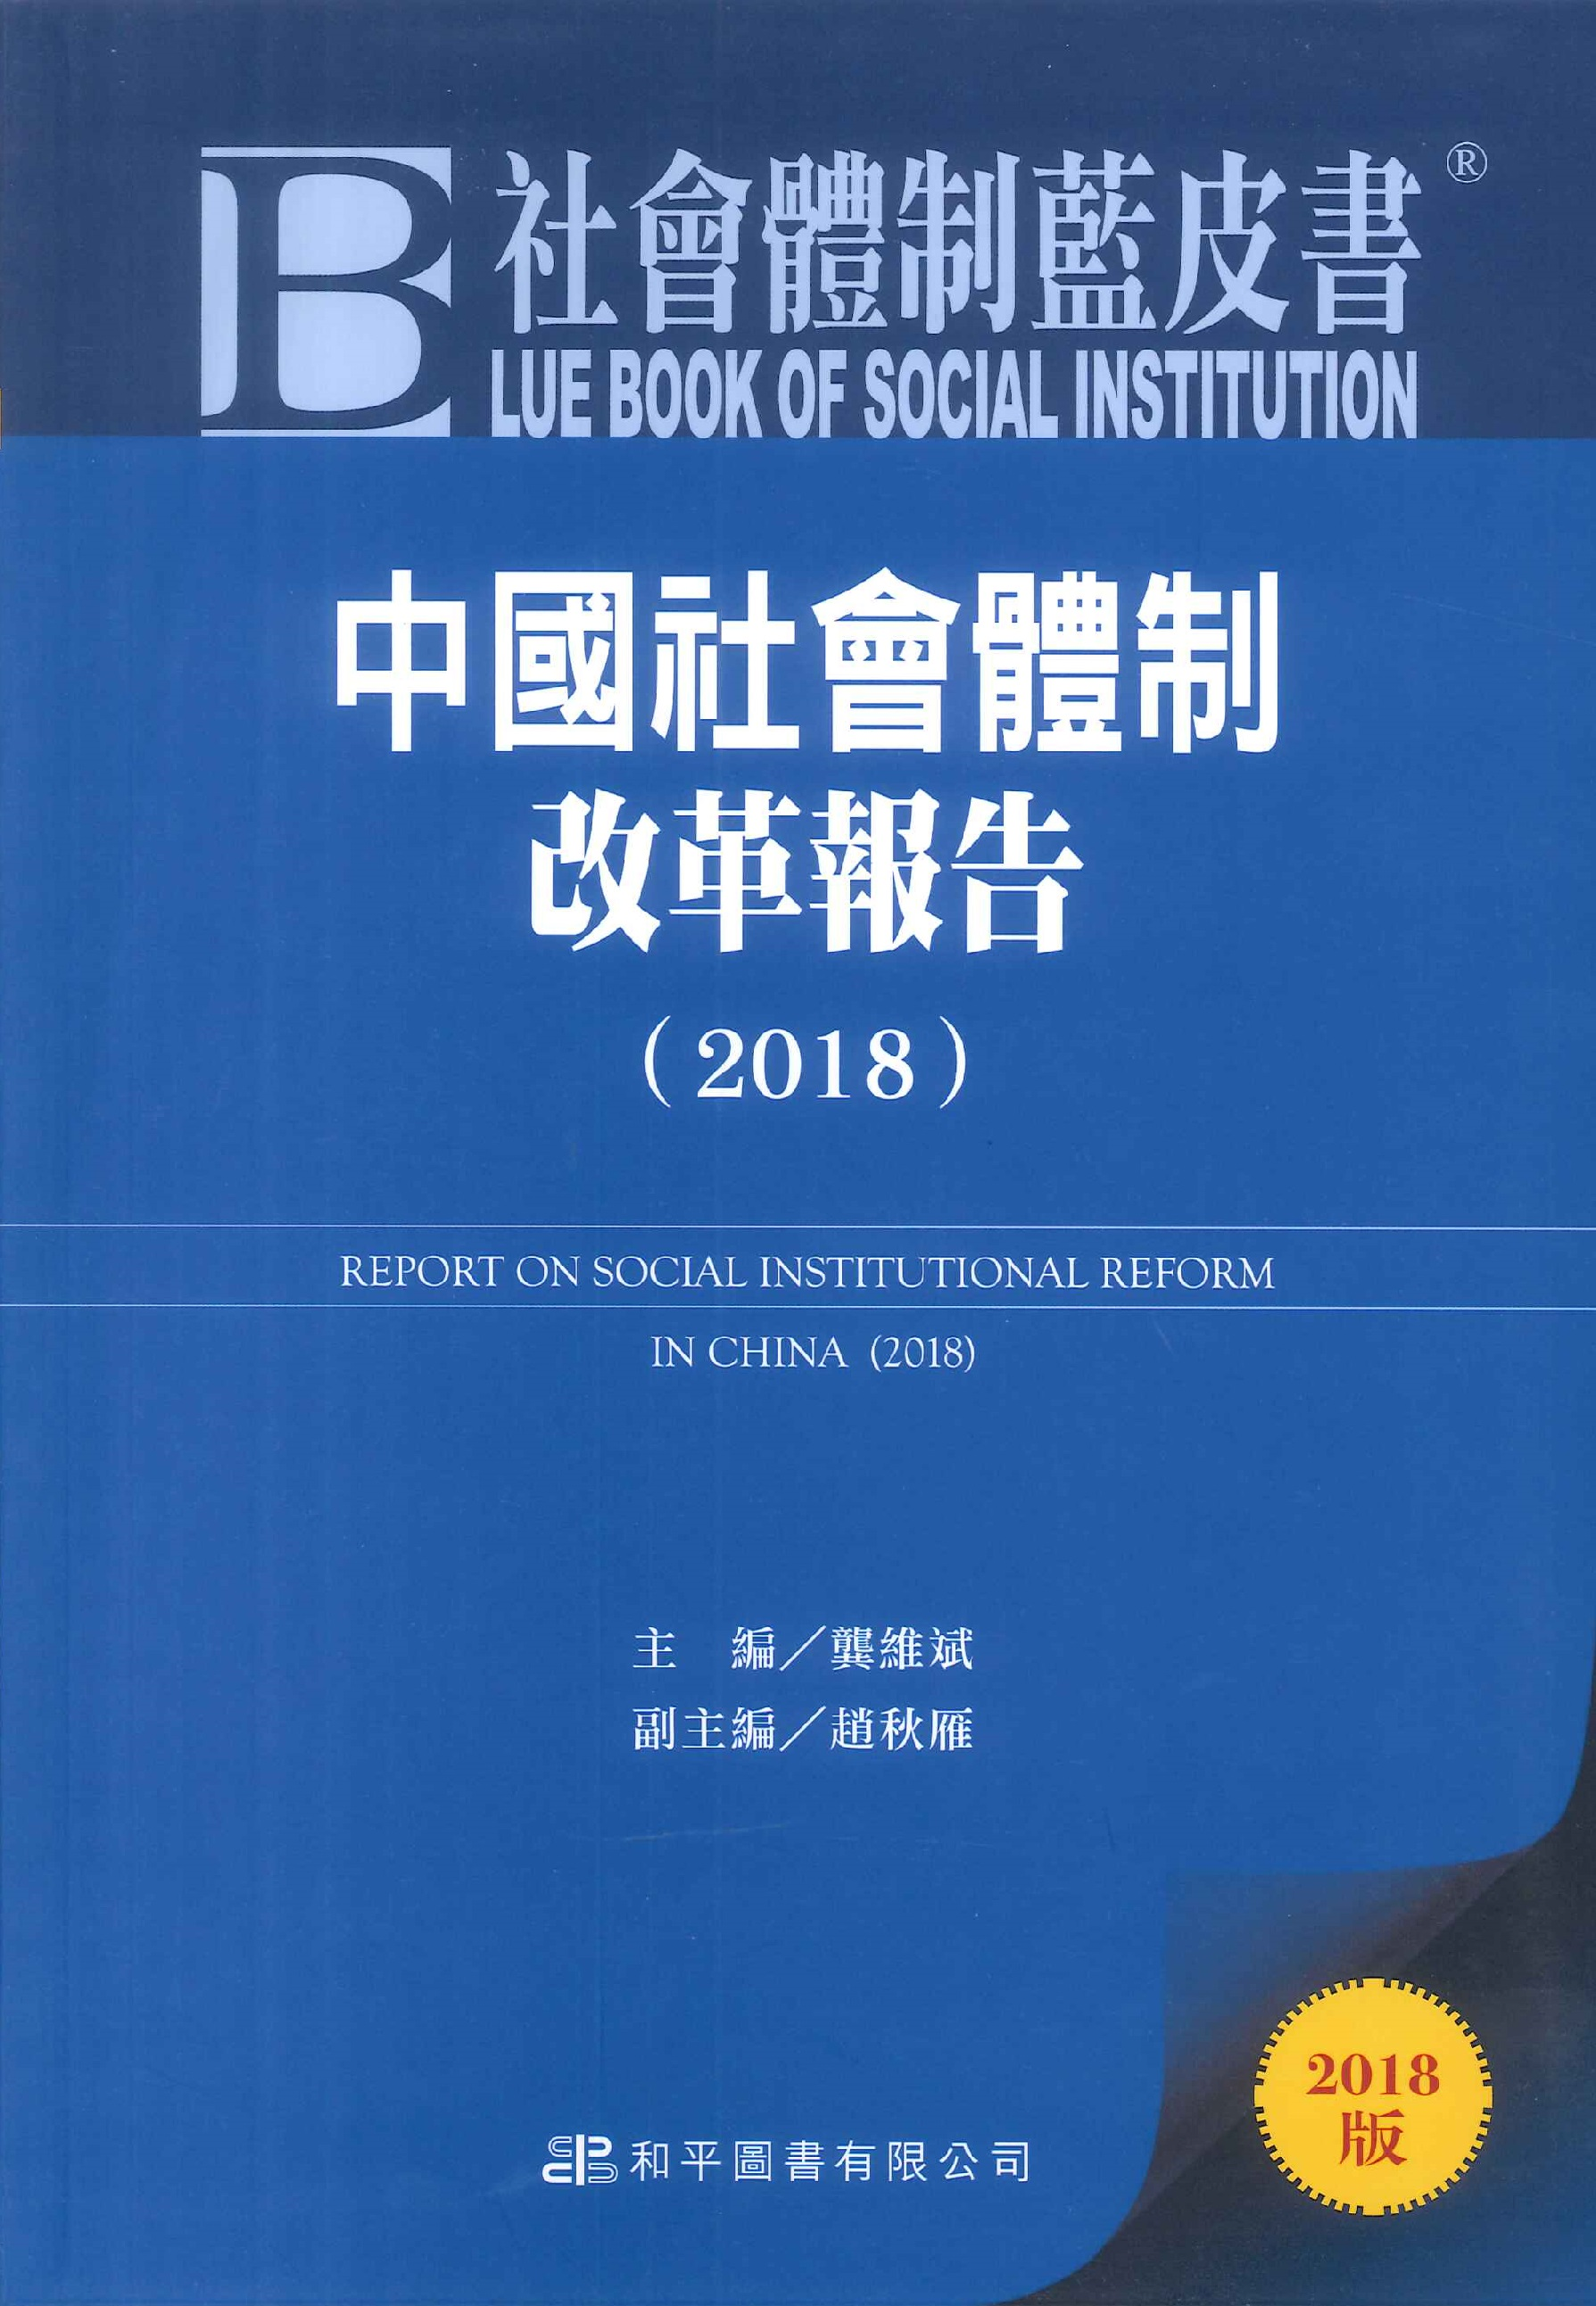 中國社會體制改革報告.2018=Report on social institutional reform in China